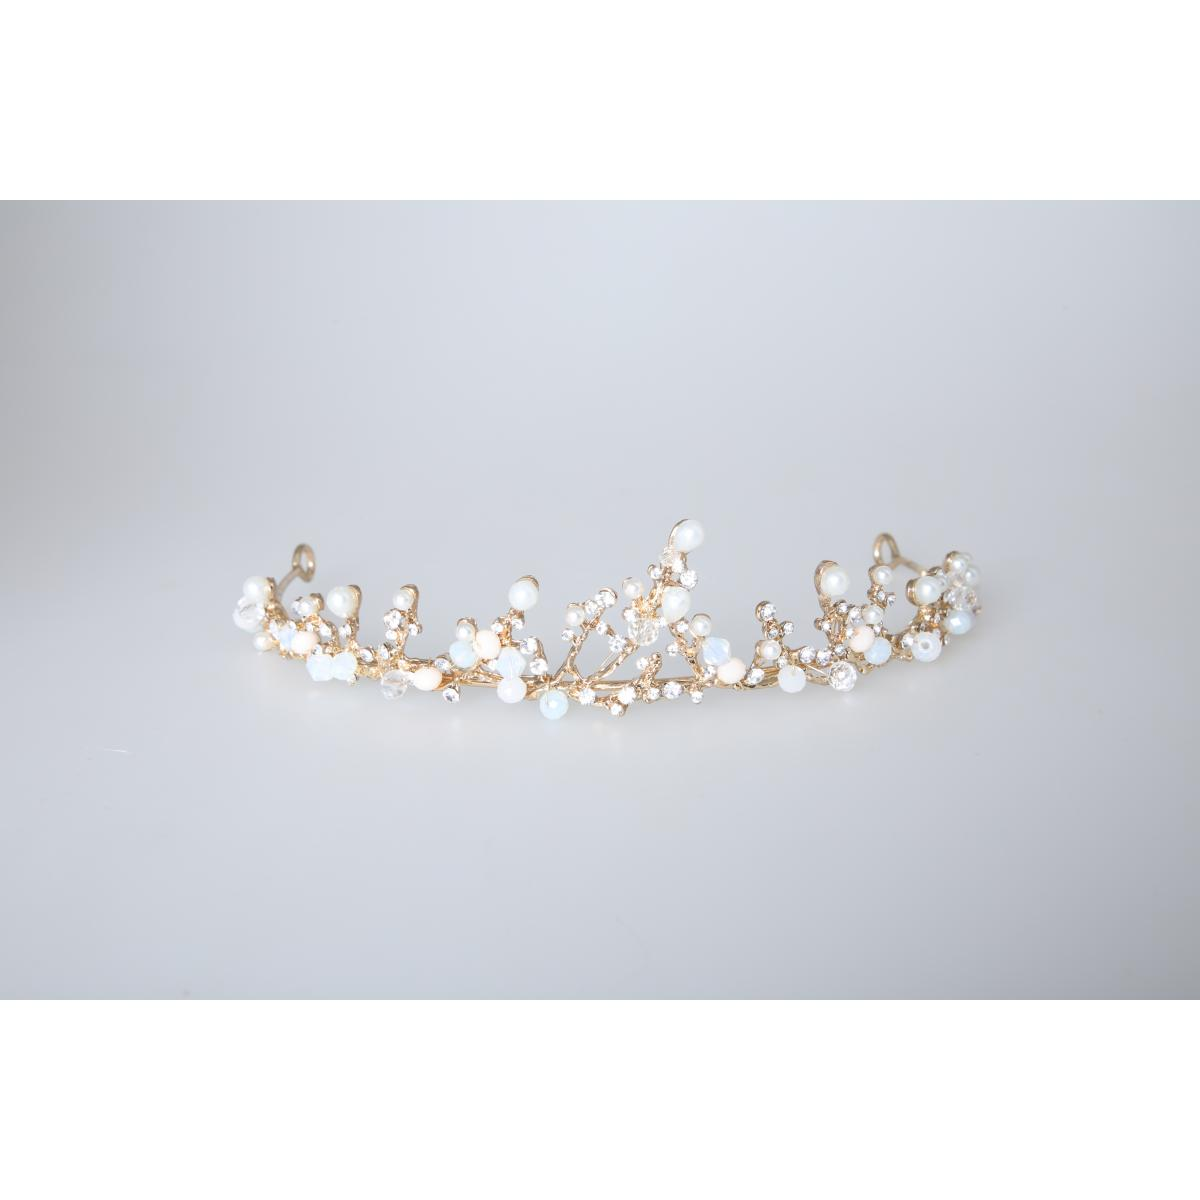 Perfect Bridal Low Crown - PBT5025 - Gold Tone 3